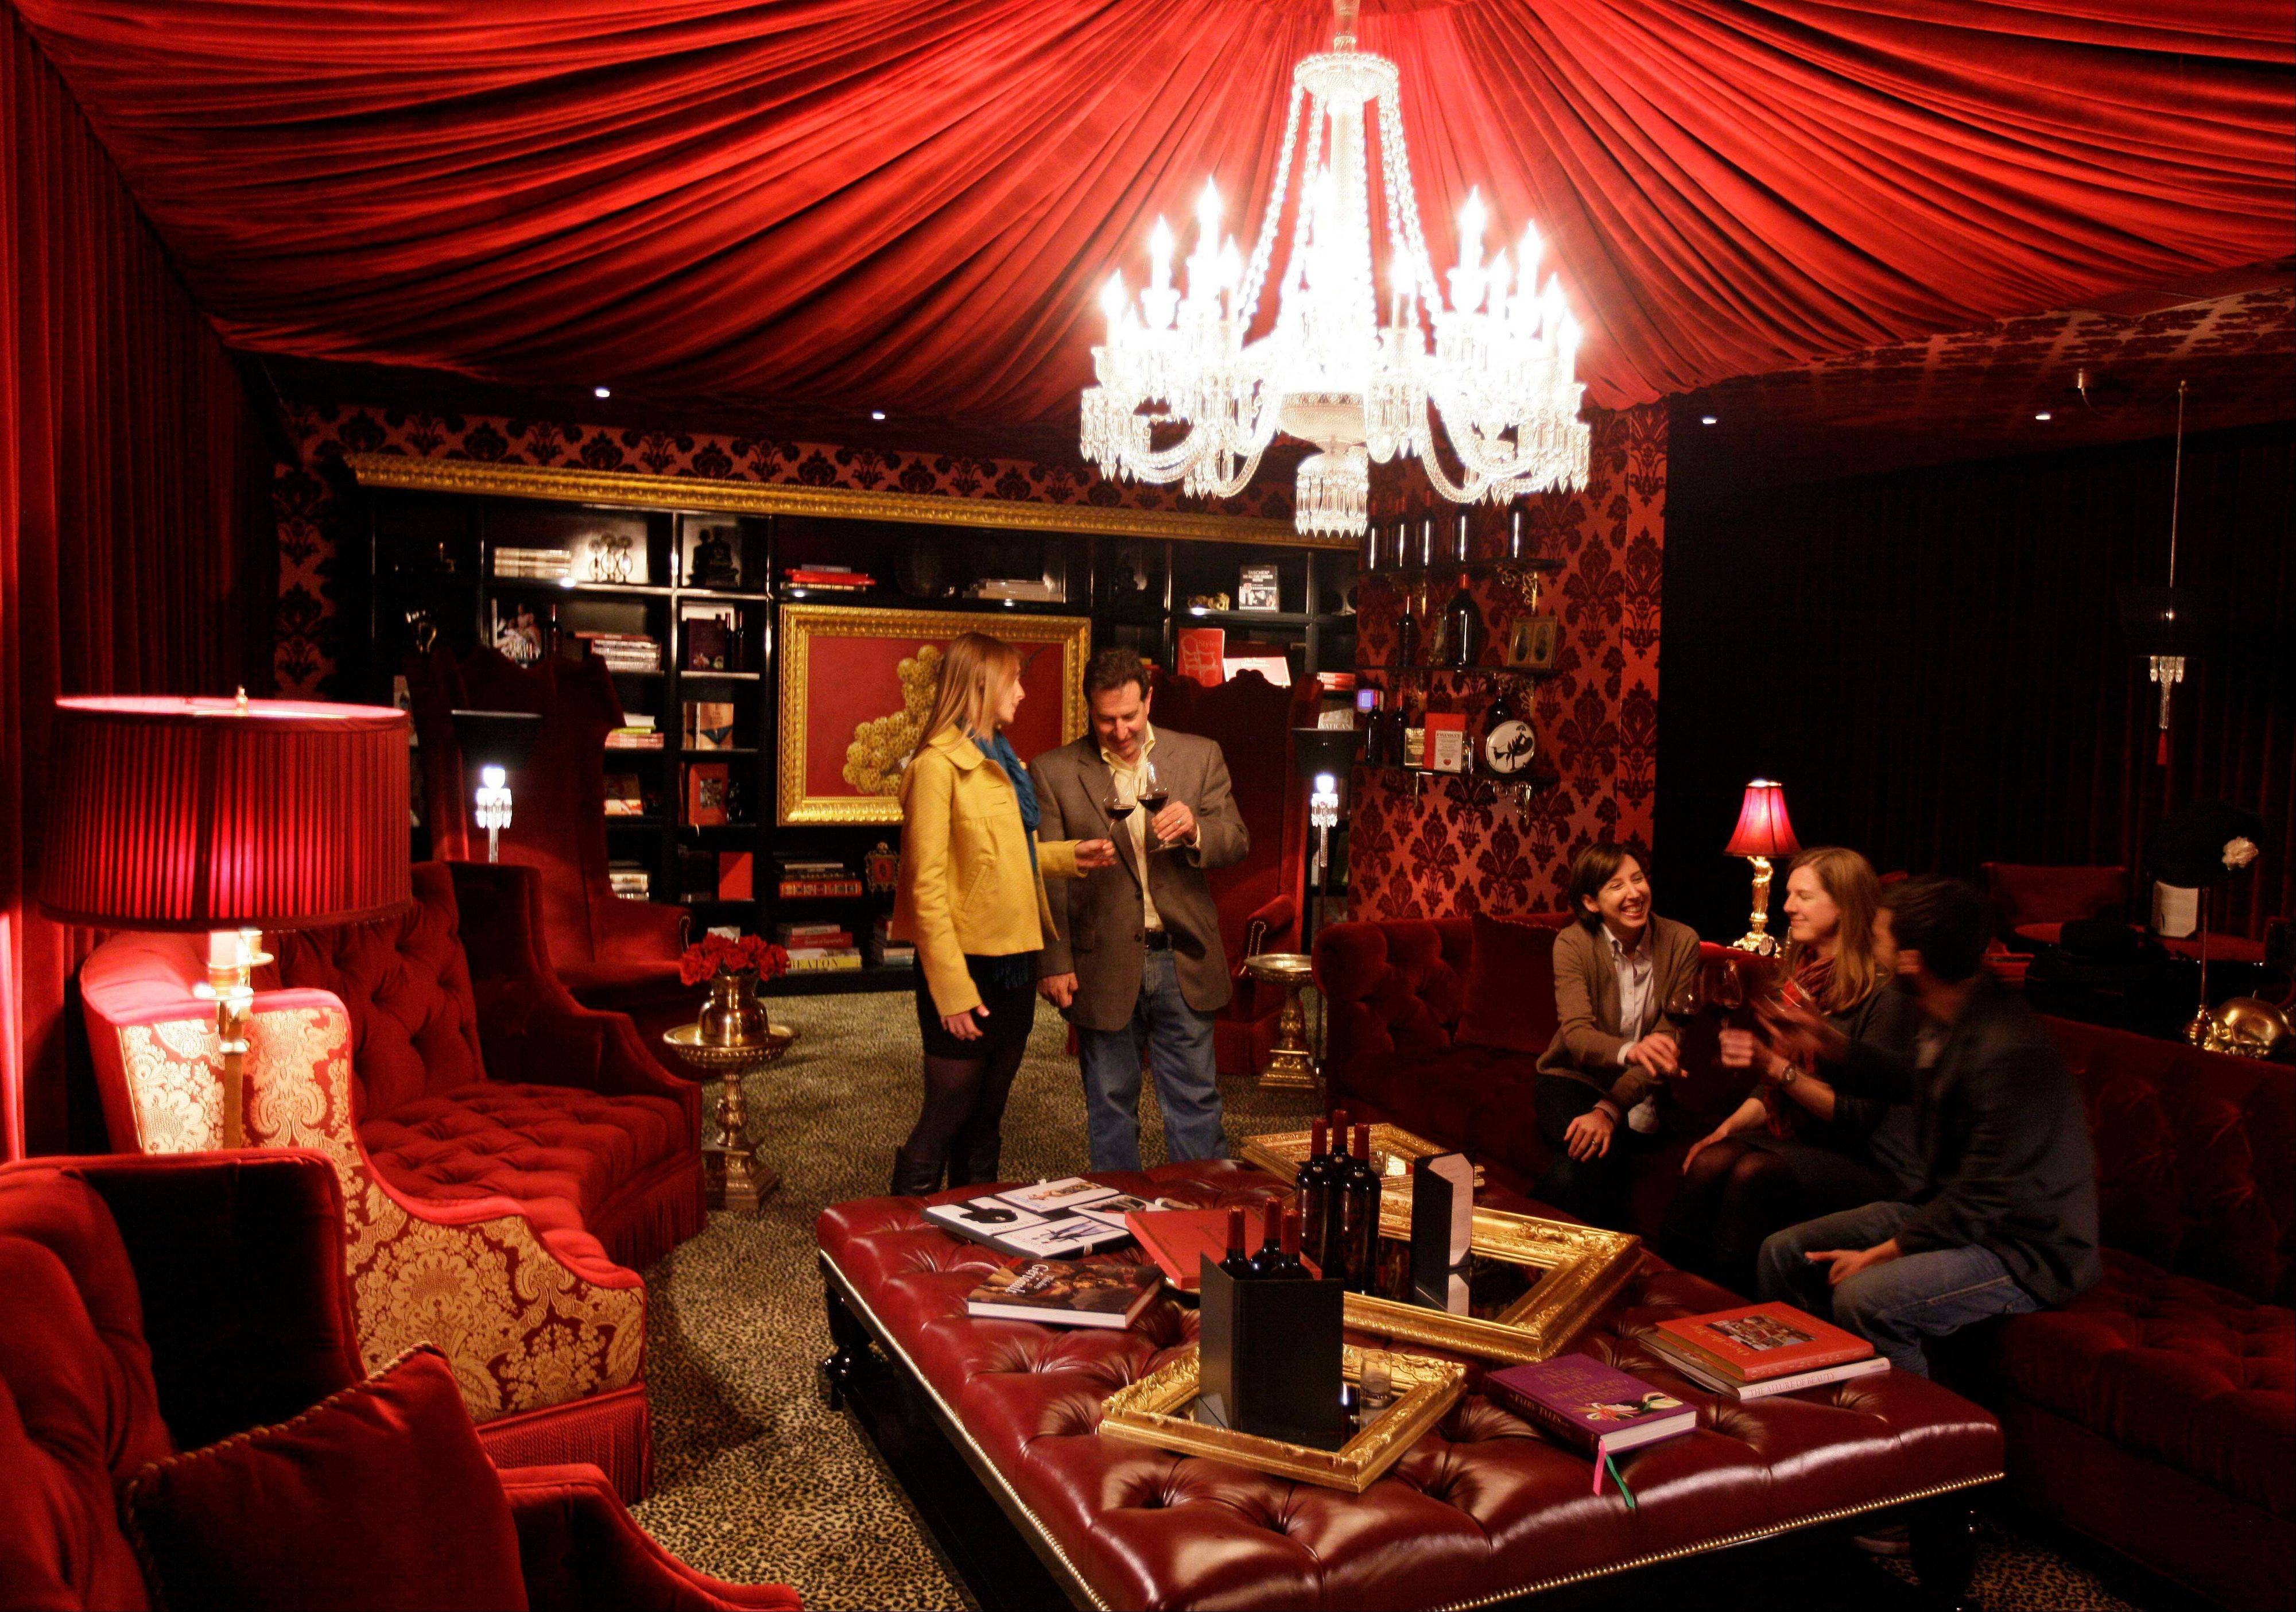 People taste wine in the Red Room at Raymond Vineyards in St. Helena, Calif. Under the guidance of Jean-Charles Boisset, scion of a French winemaking family who is married to Gina Gallo of the American Gallo wine dynasty, this winery has undergone a major change in recent years.